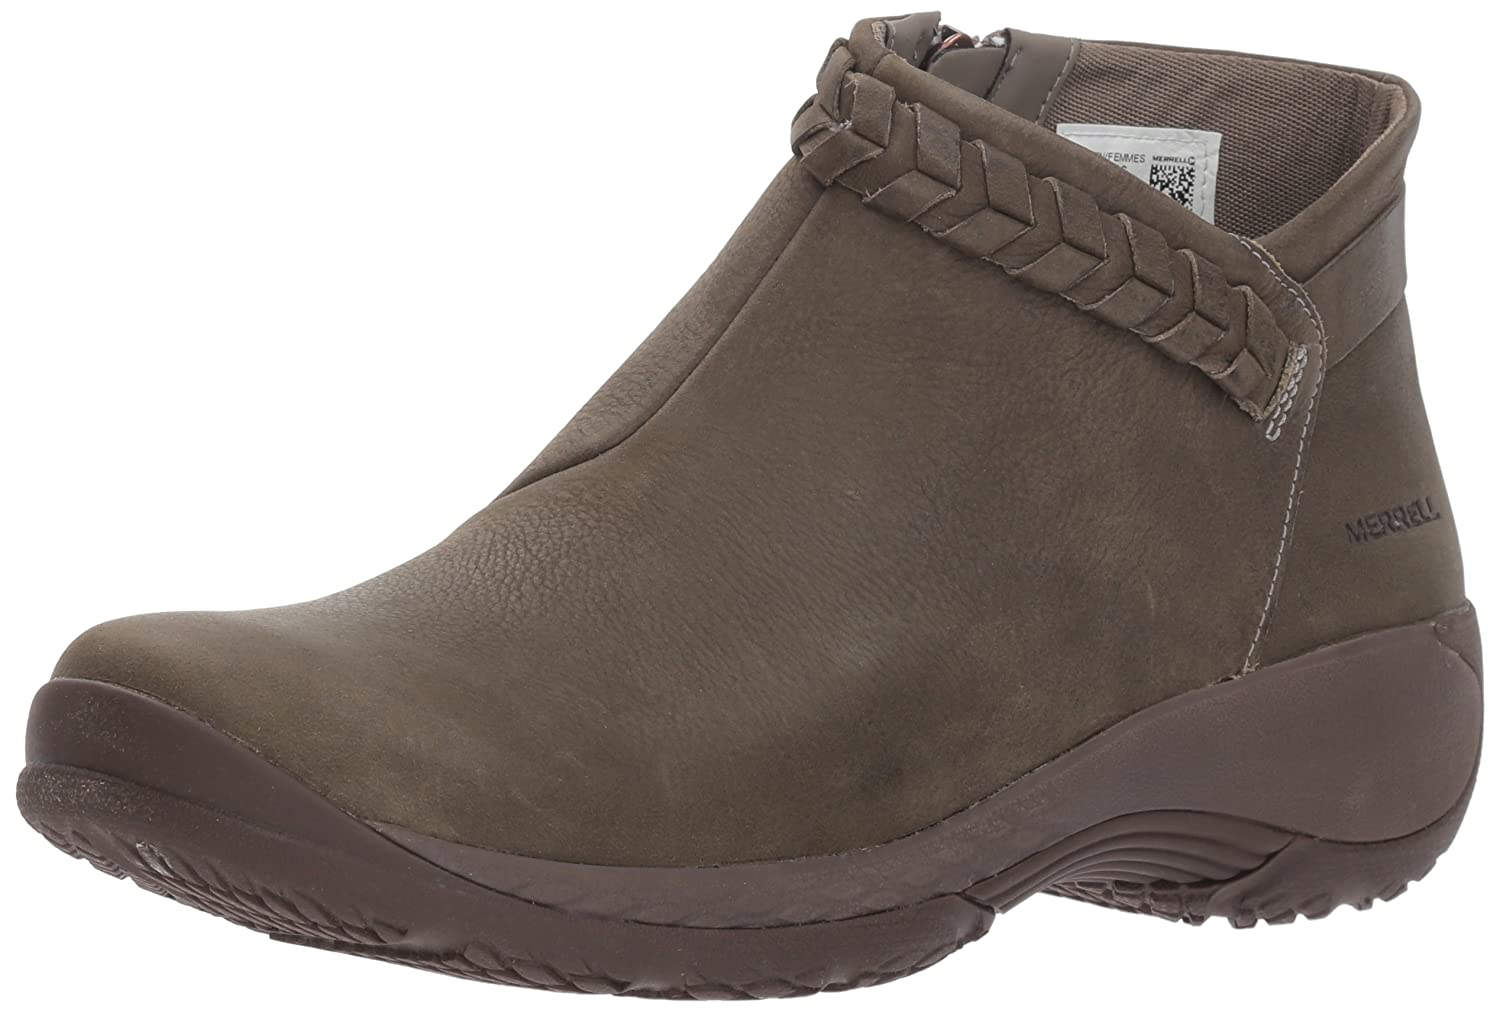 Merrell Women's Encore Braided Bluff Q2 Fashion Boot B078NJC22M 6.5 B(M) US|Olive